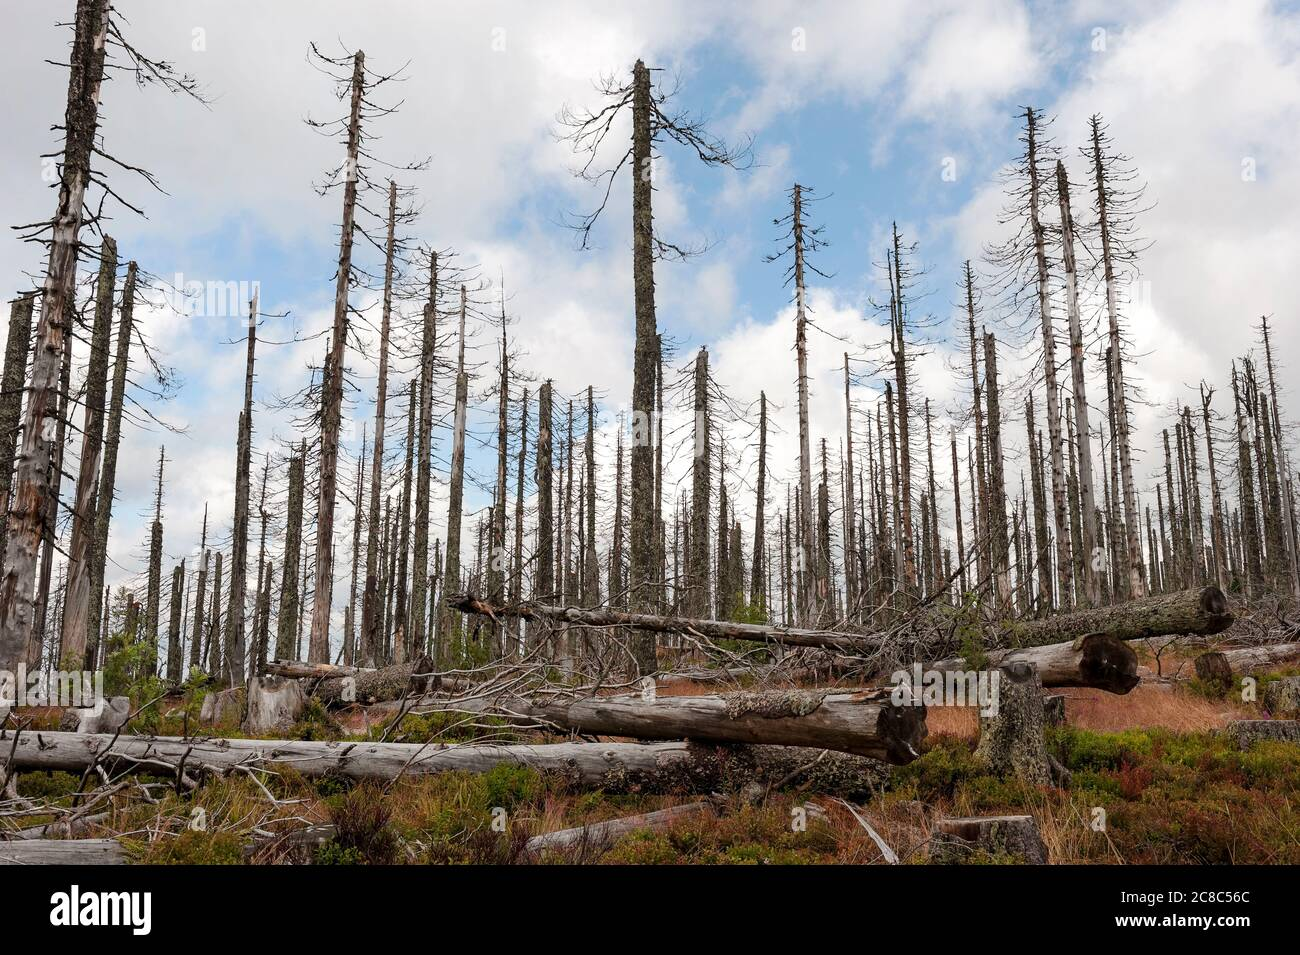 Bavarian - Germany, 1. August 2015: The Bavarian Forest National Park is a national park in the rear Bavarian Forest directly on the border with the C Stock Photo